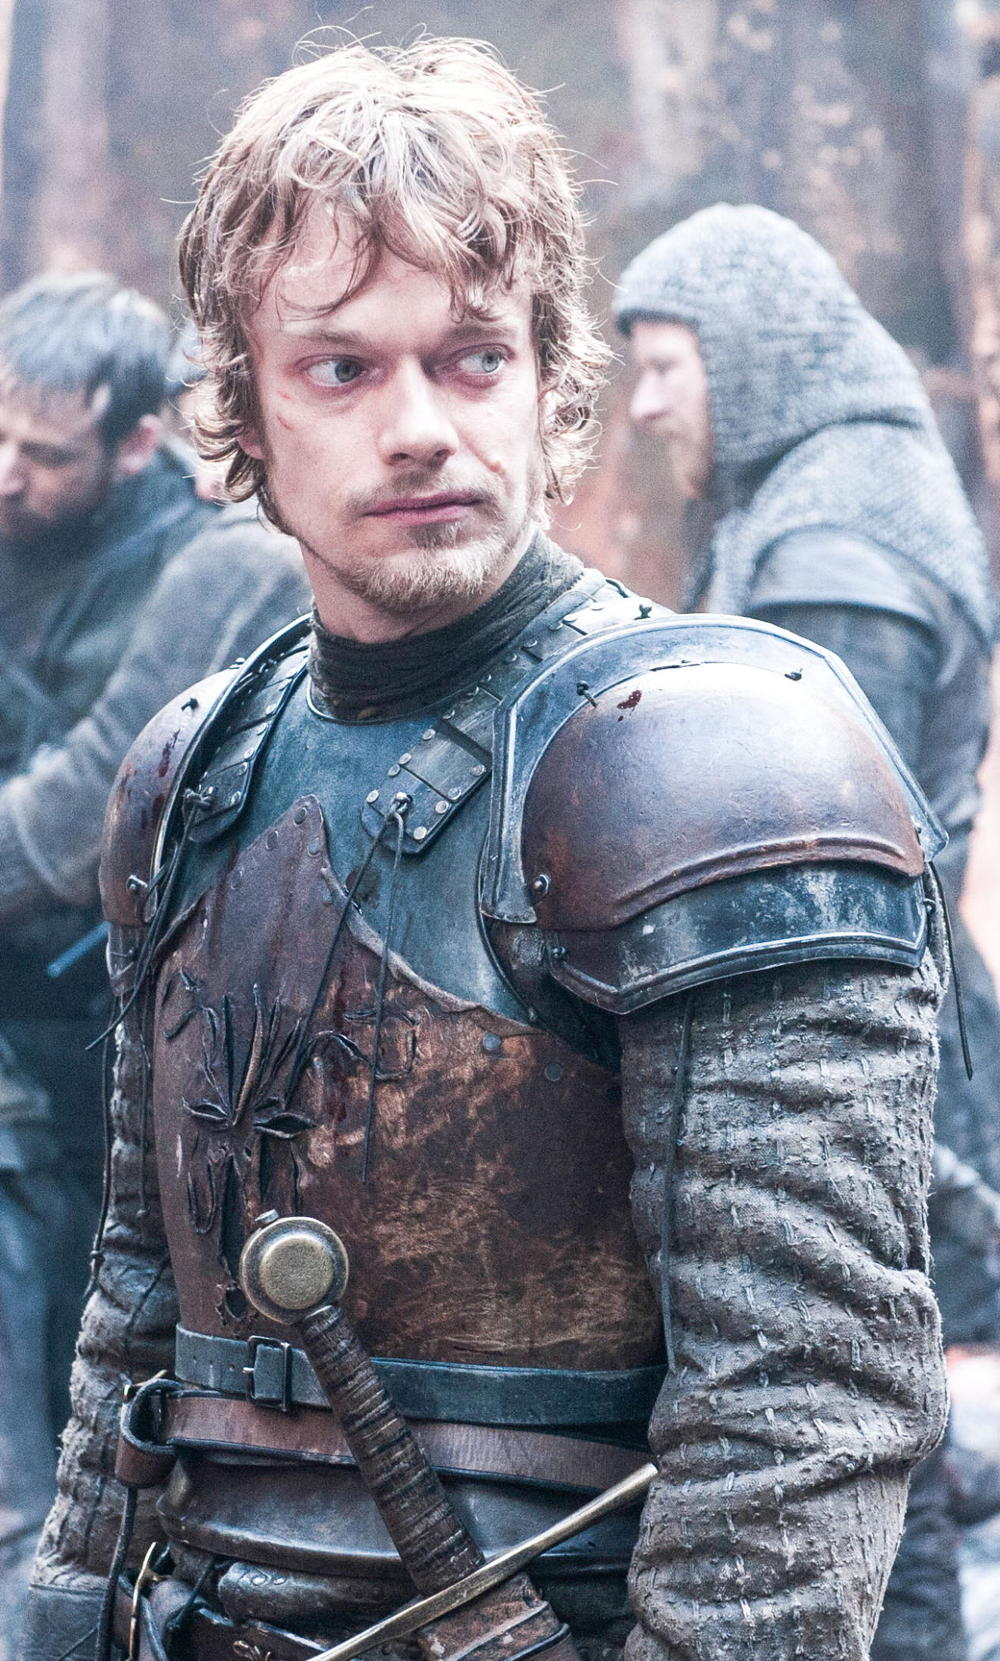 Game of Thrones Season 5 Spoilers: What Happens to Theon?